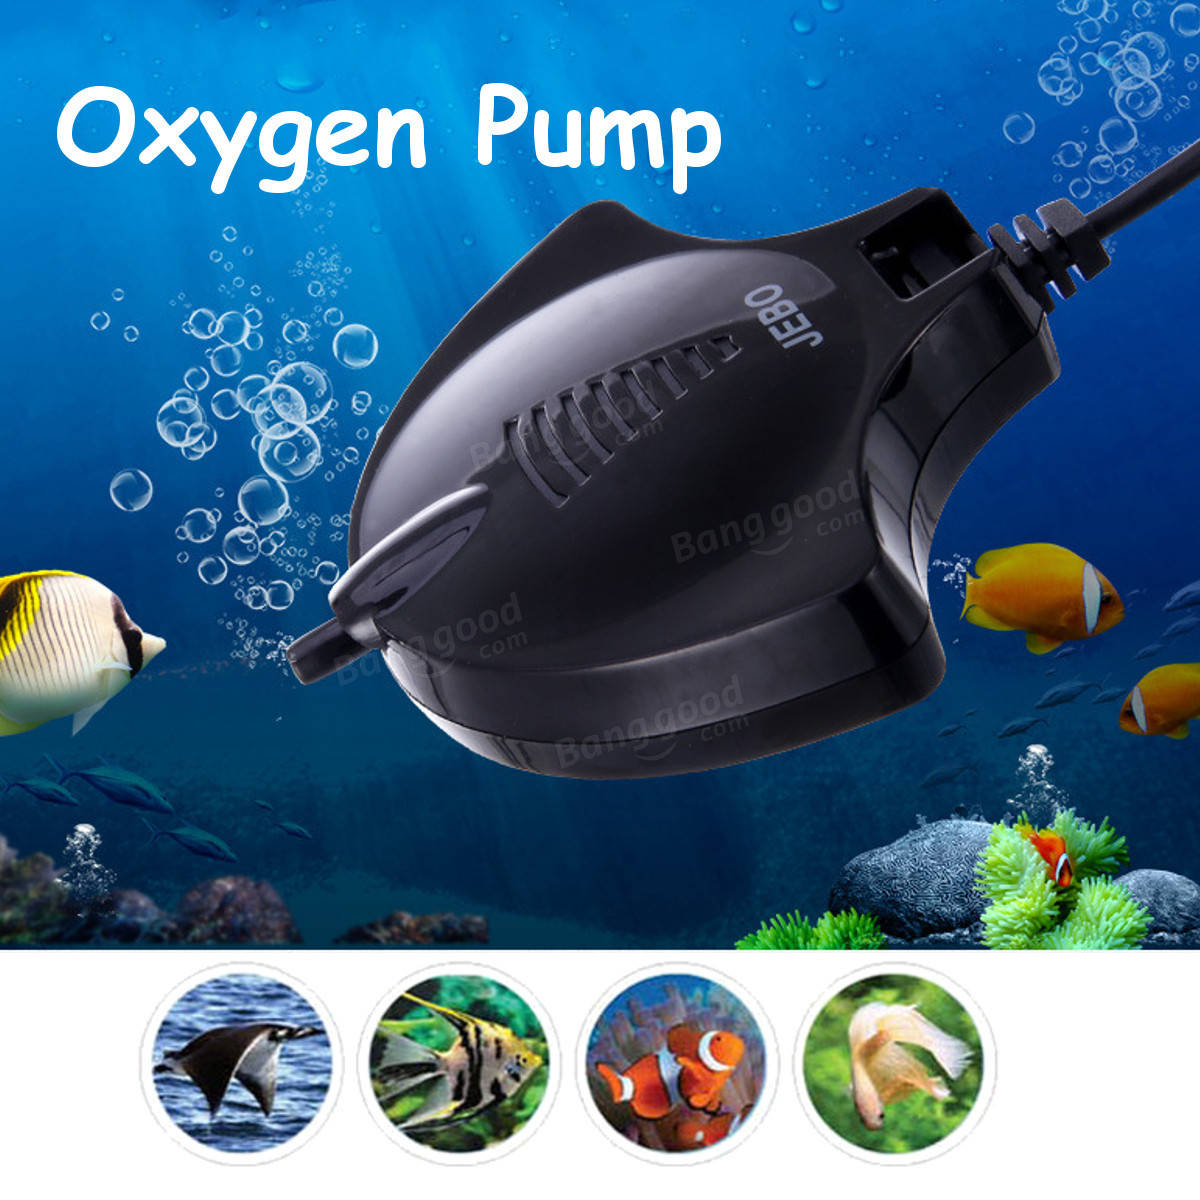 Aquarium Air Pump Ultra Silent High Energy Saving Oxygen Air Pump Aquarium for Fish Tank EU Plug